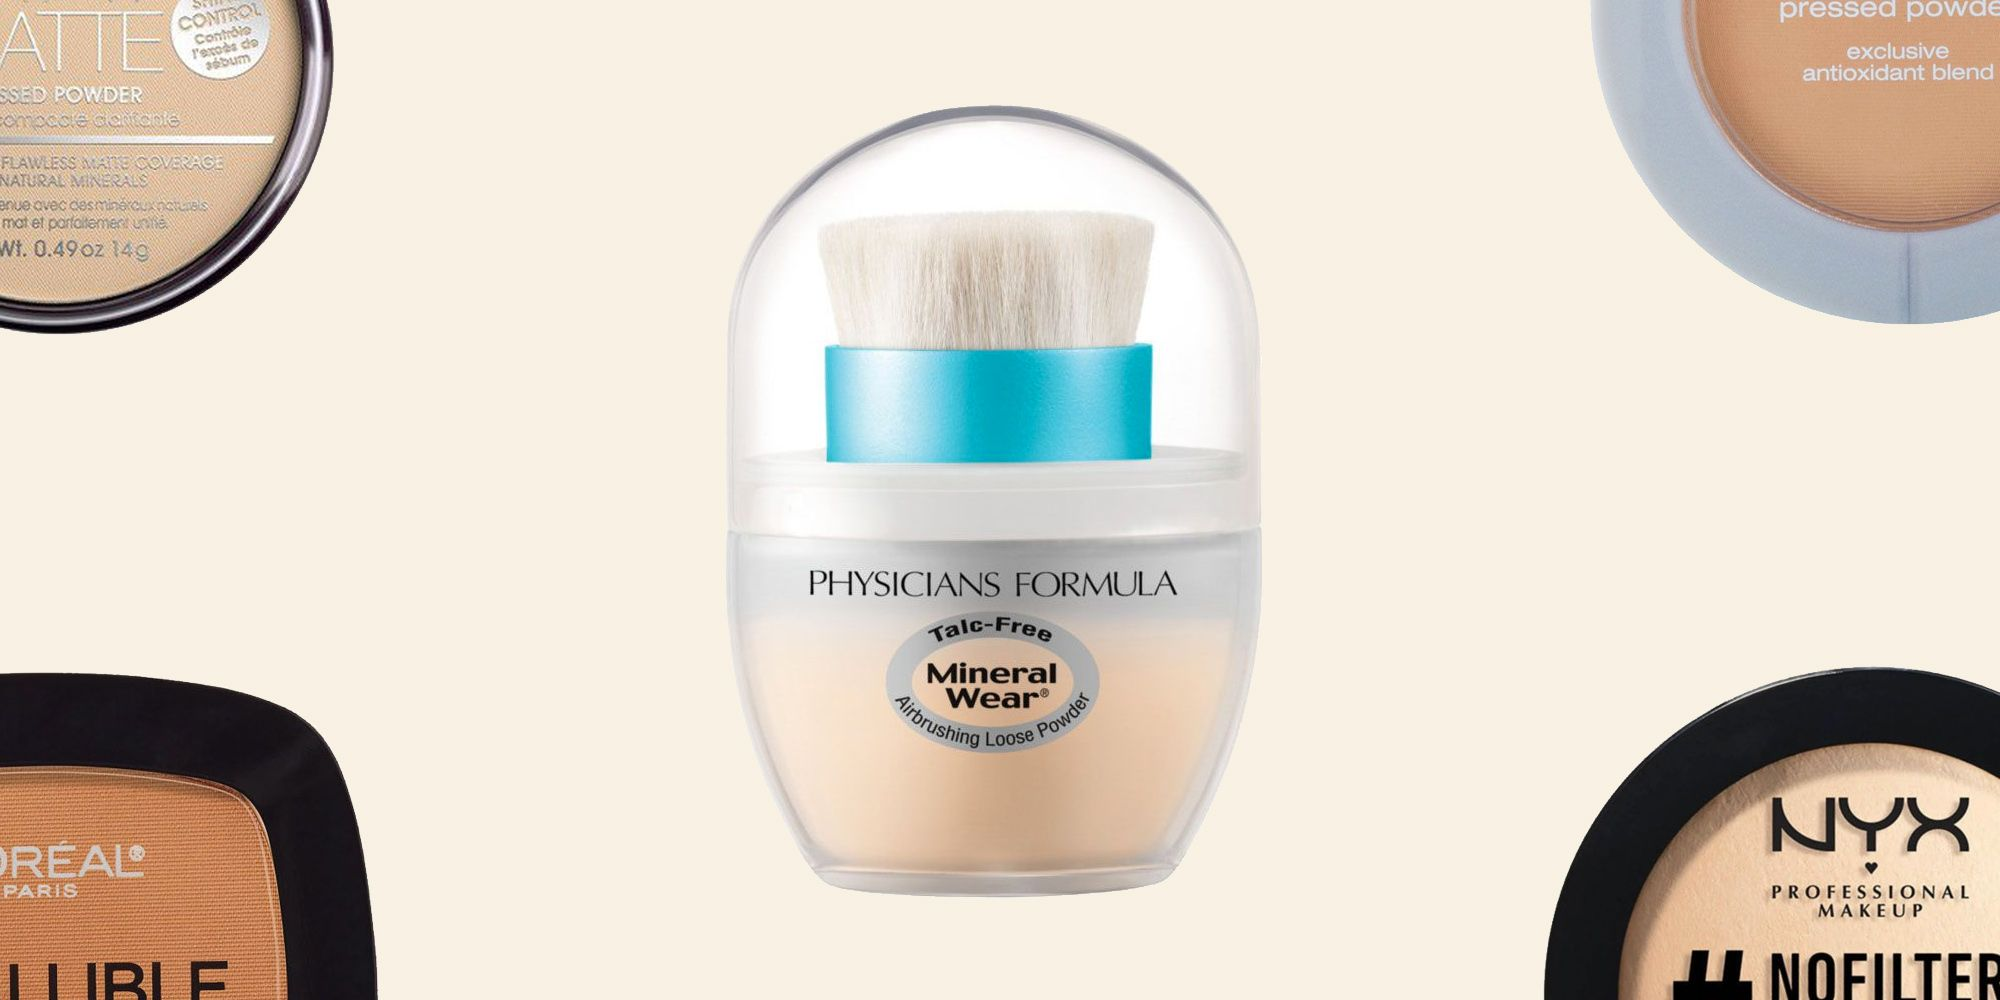 10 Best Drugstore Setting Powders Cheap Translucent Finishing Powders